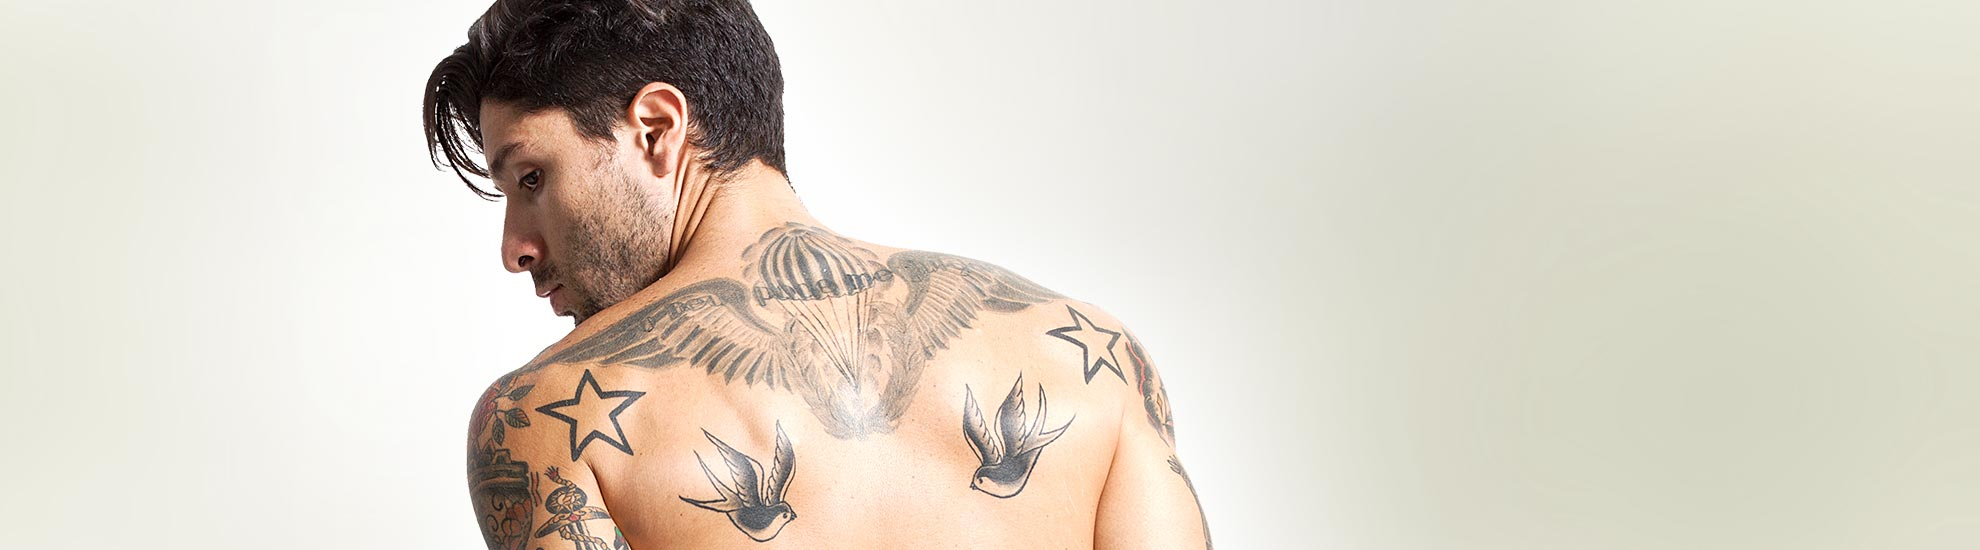 Ottawa Laser Hair And Tattoo Removal Specialists Ideas And Designs